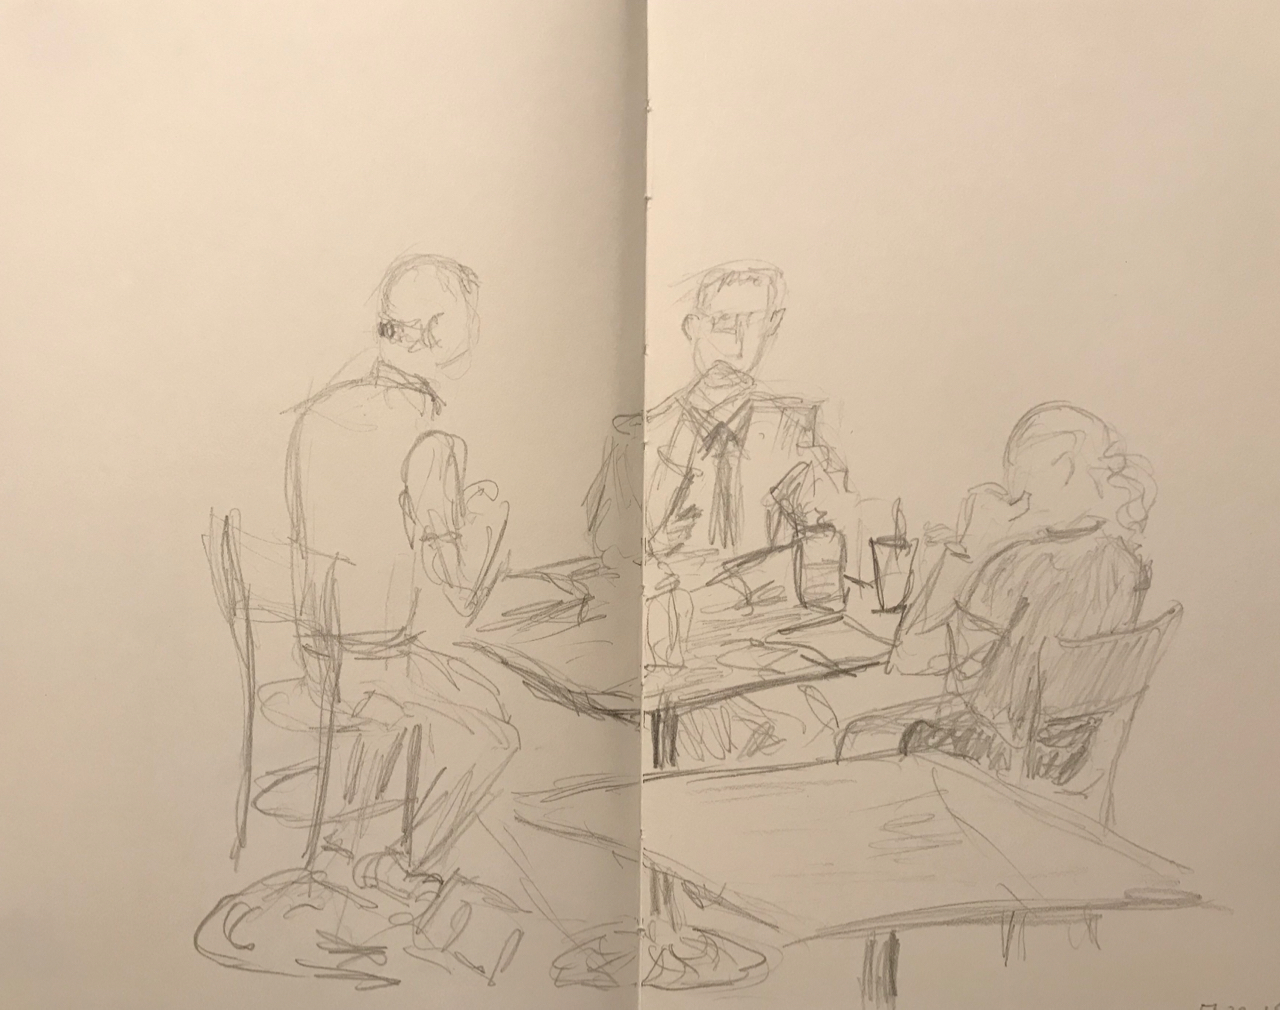 Sketch pencil people playing cards or having a business meeting